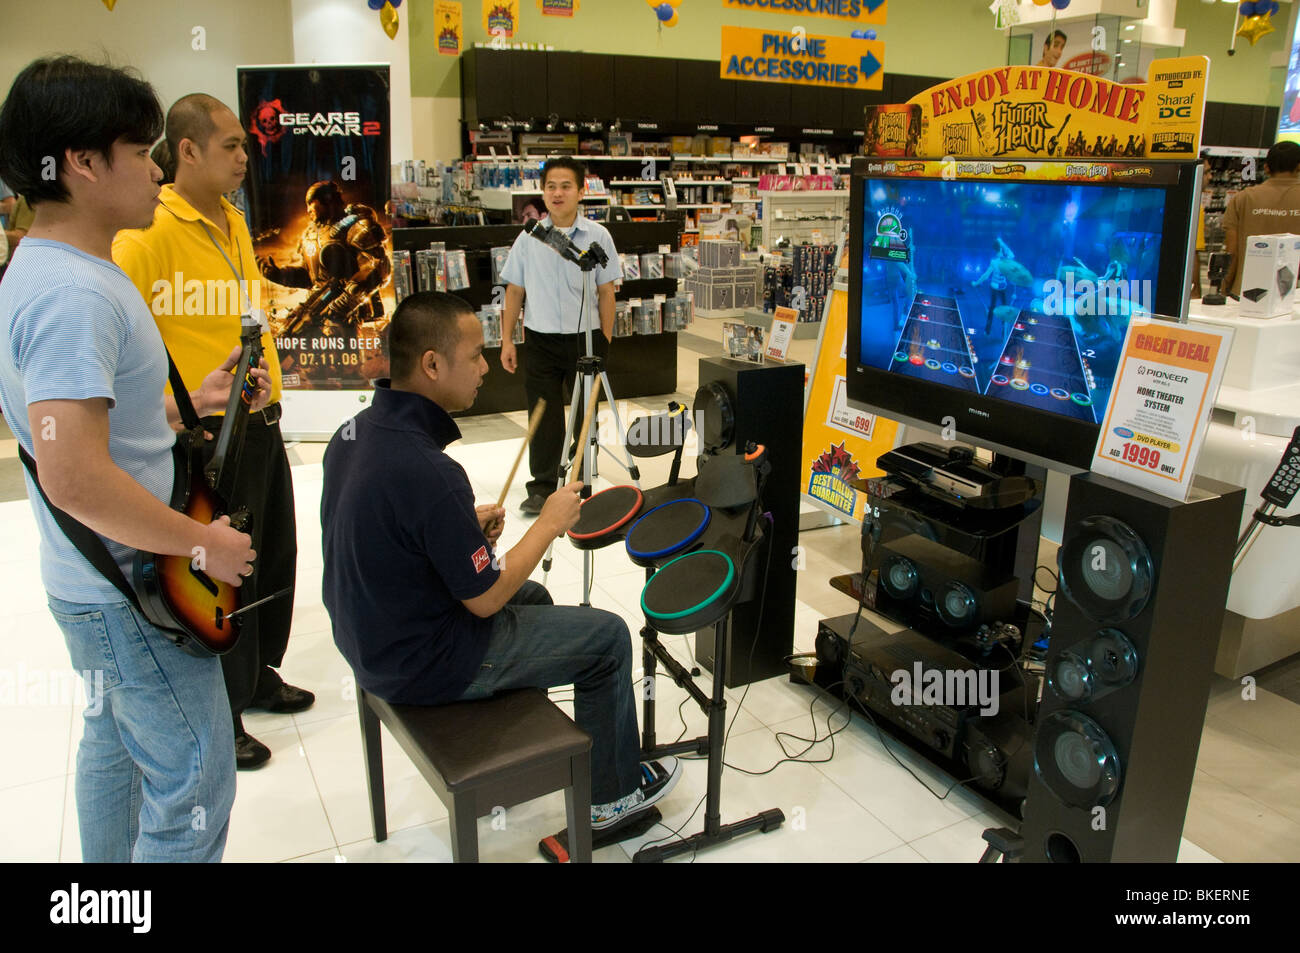 People playing Guitar Hero in a shop - Stock Image